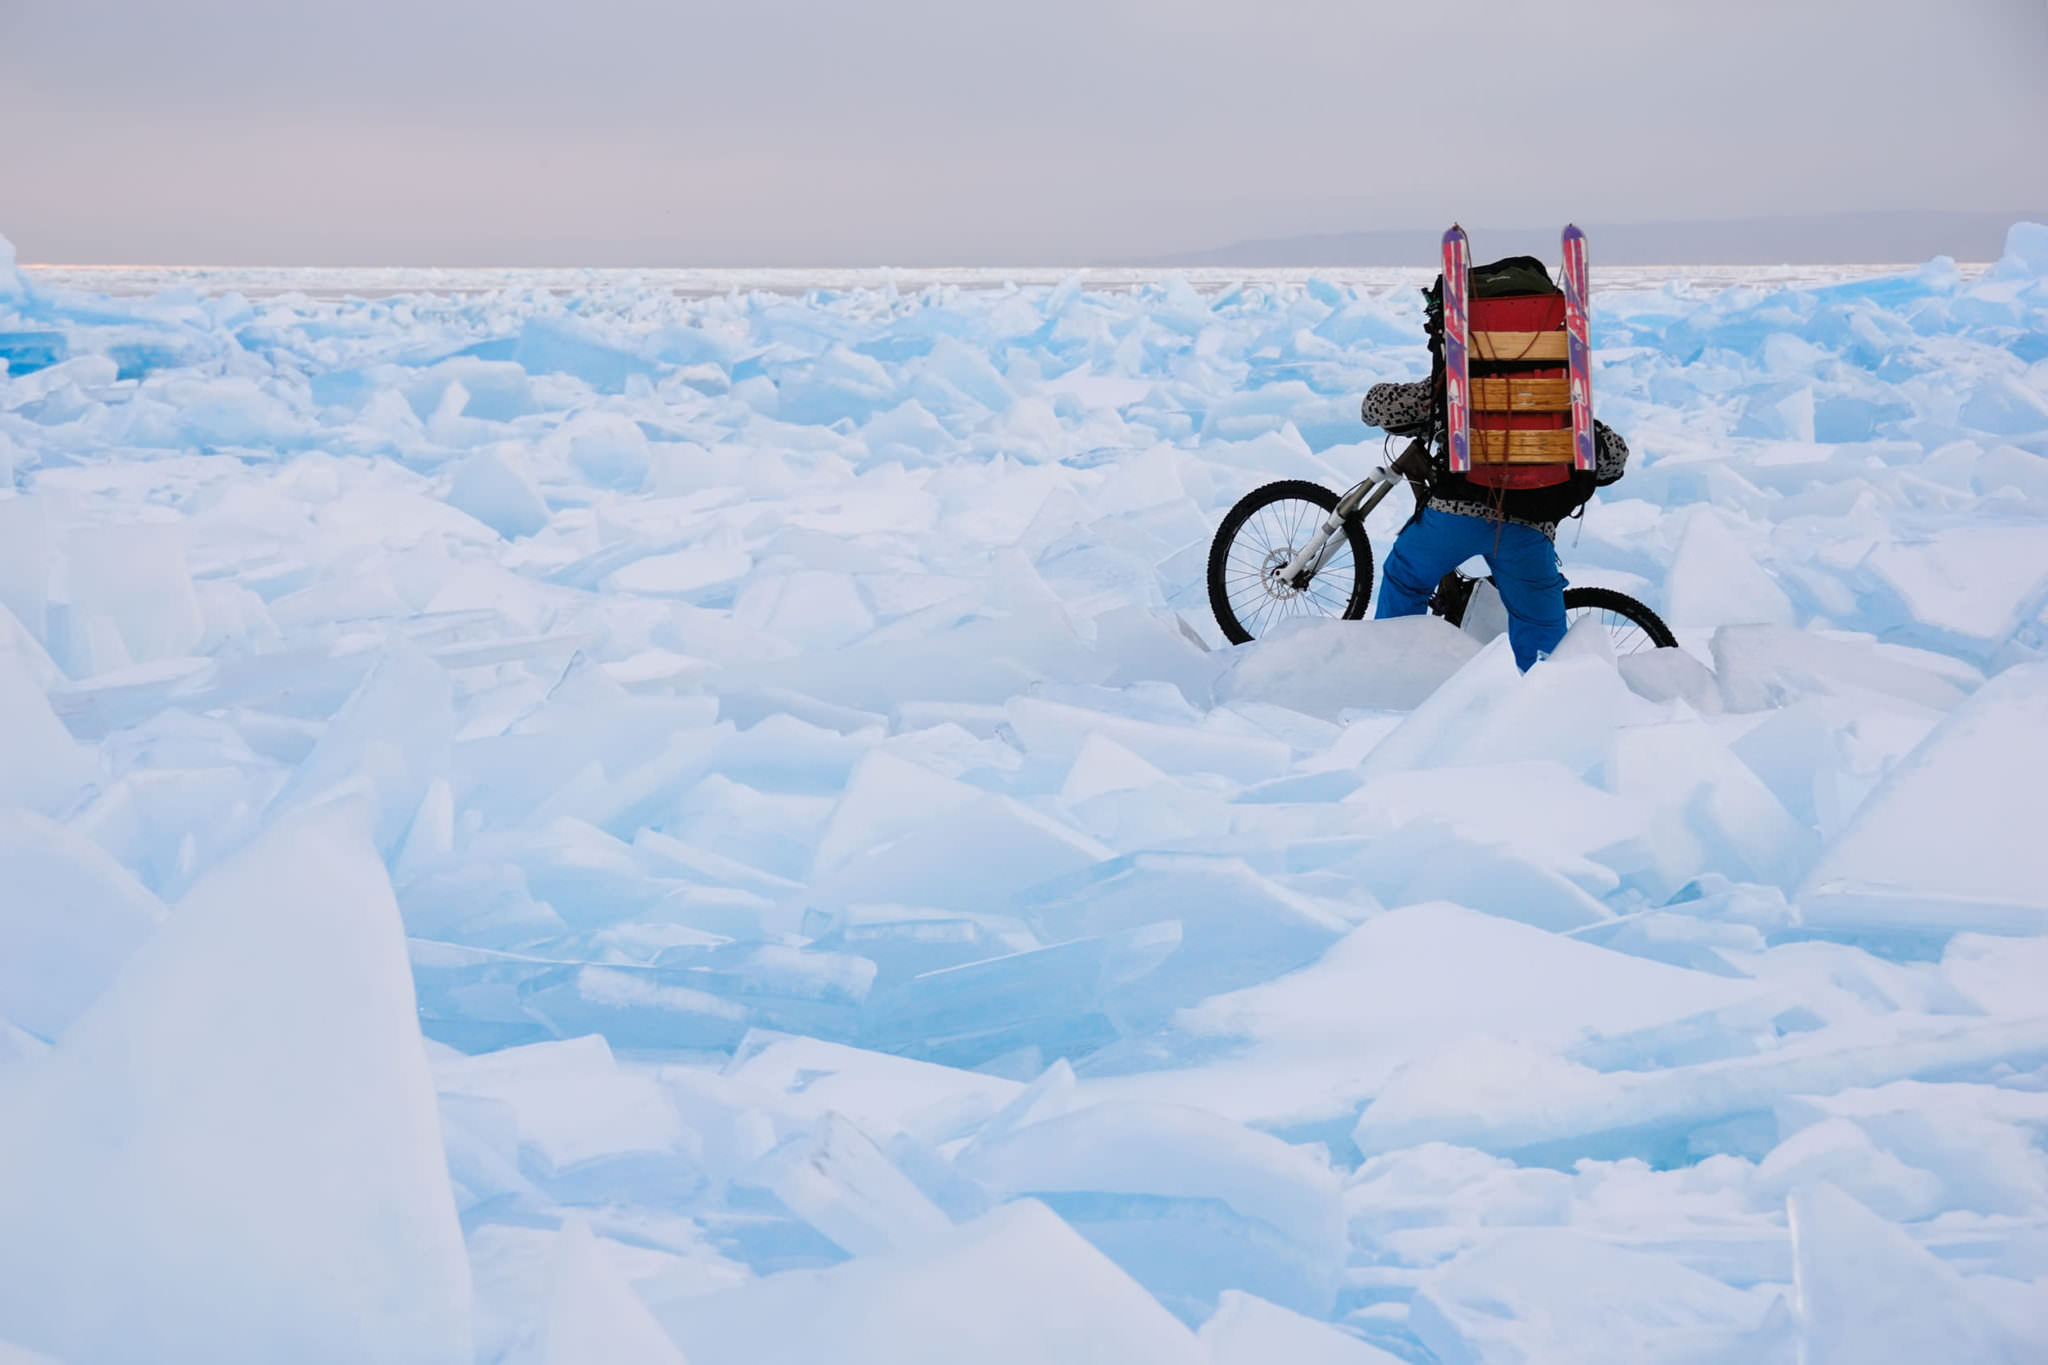 Ice biking gear, backpack